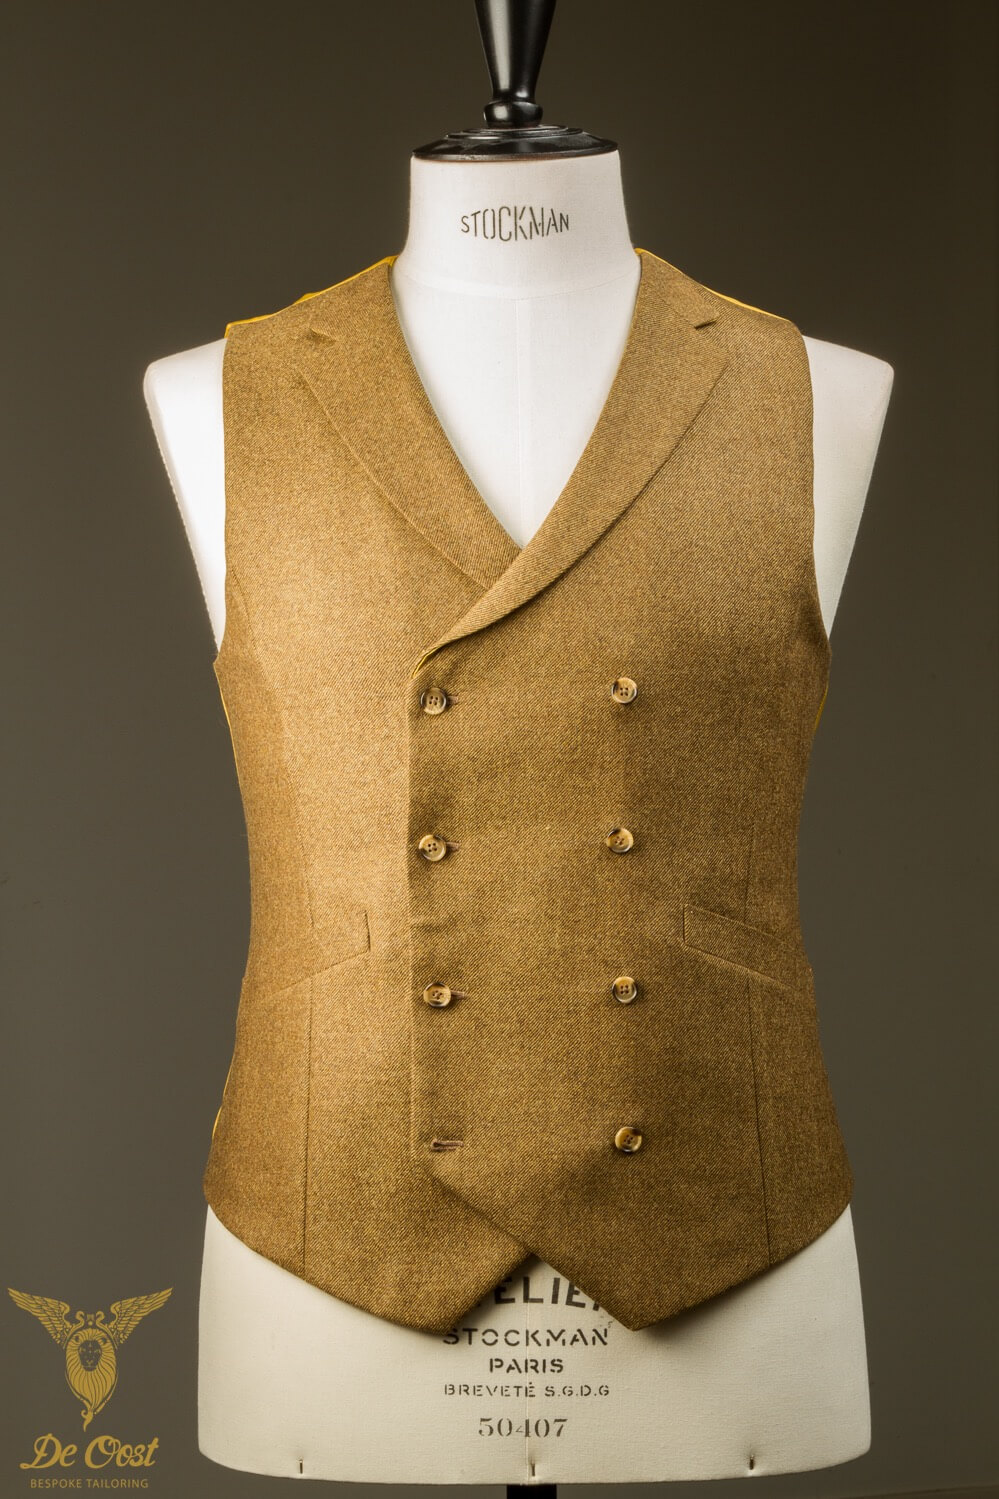 - Hand Made Bespoke Yellow Ochre Tweed Double Breasted Waistcoat With Notch Lapel